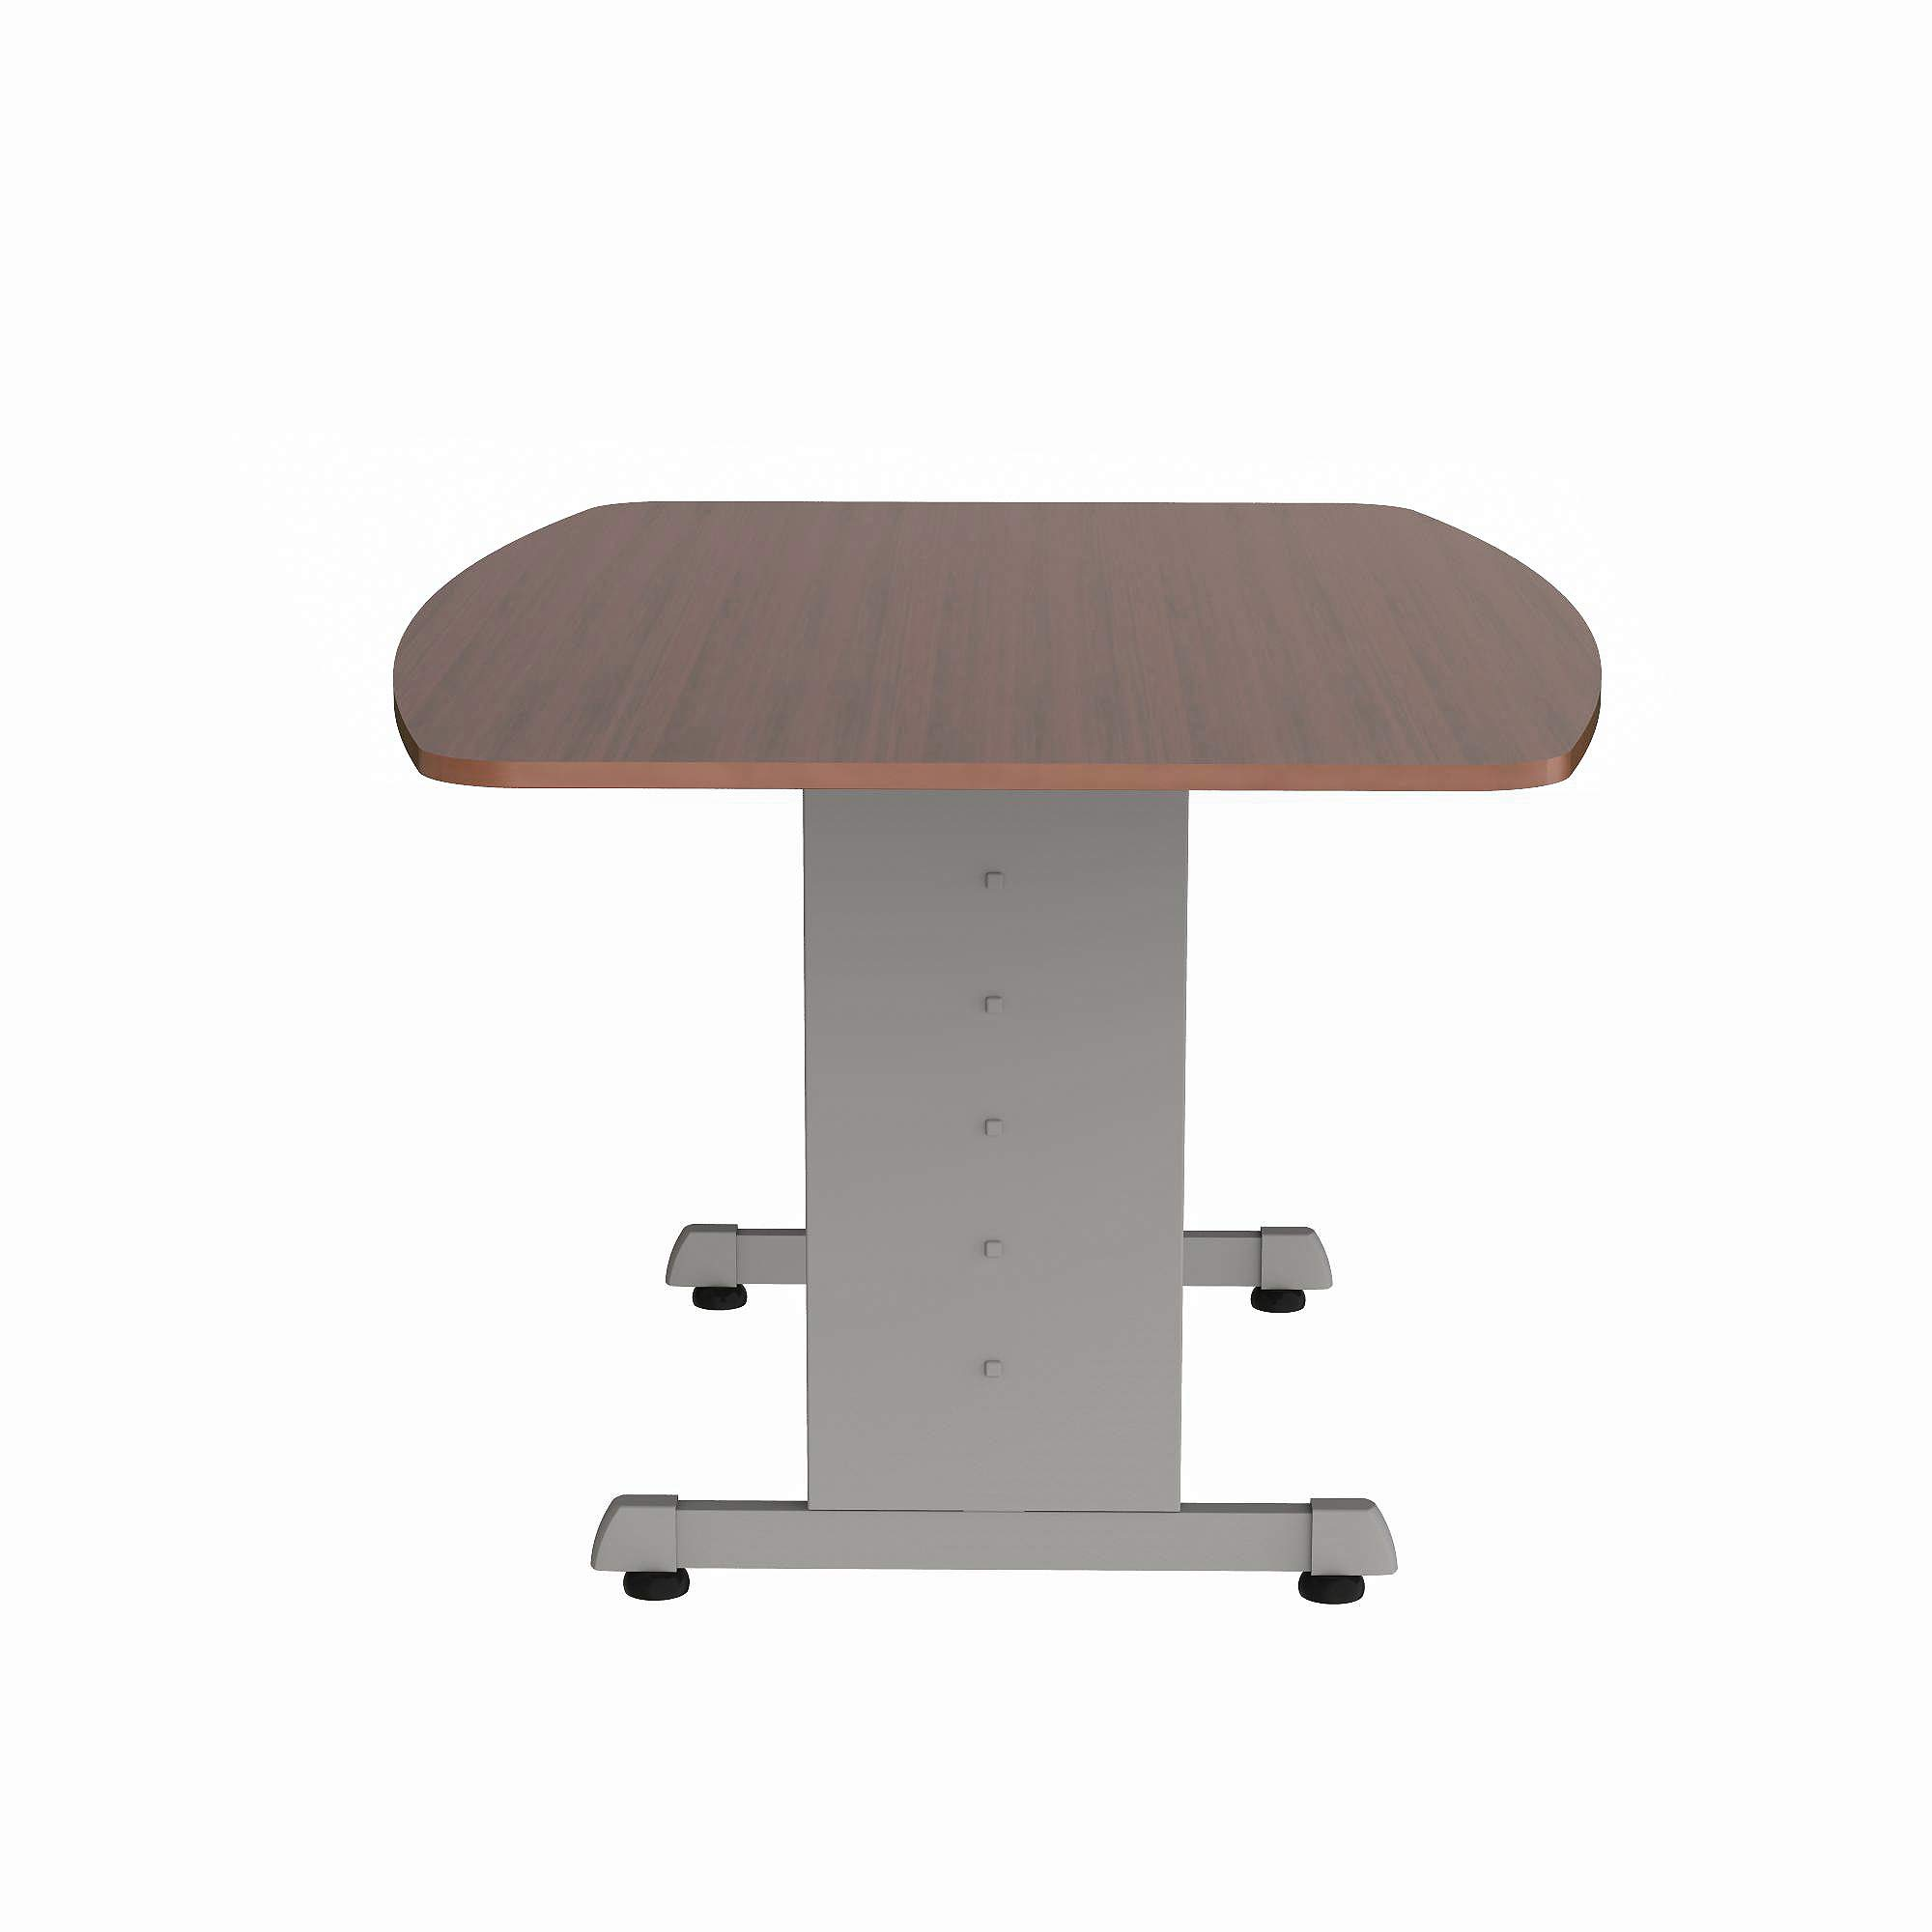 Linea Italia 60''x40'' Office Conference Table, Cherry Laminate, Seats 6, Conference Room Funature, No Tool Simple Fast Assembly (ZUC118) by Linea Italia